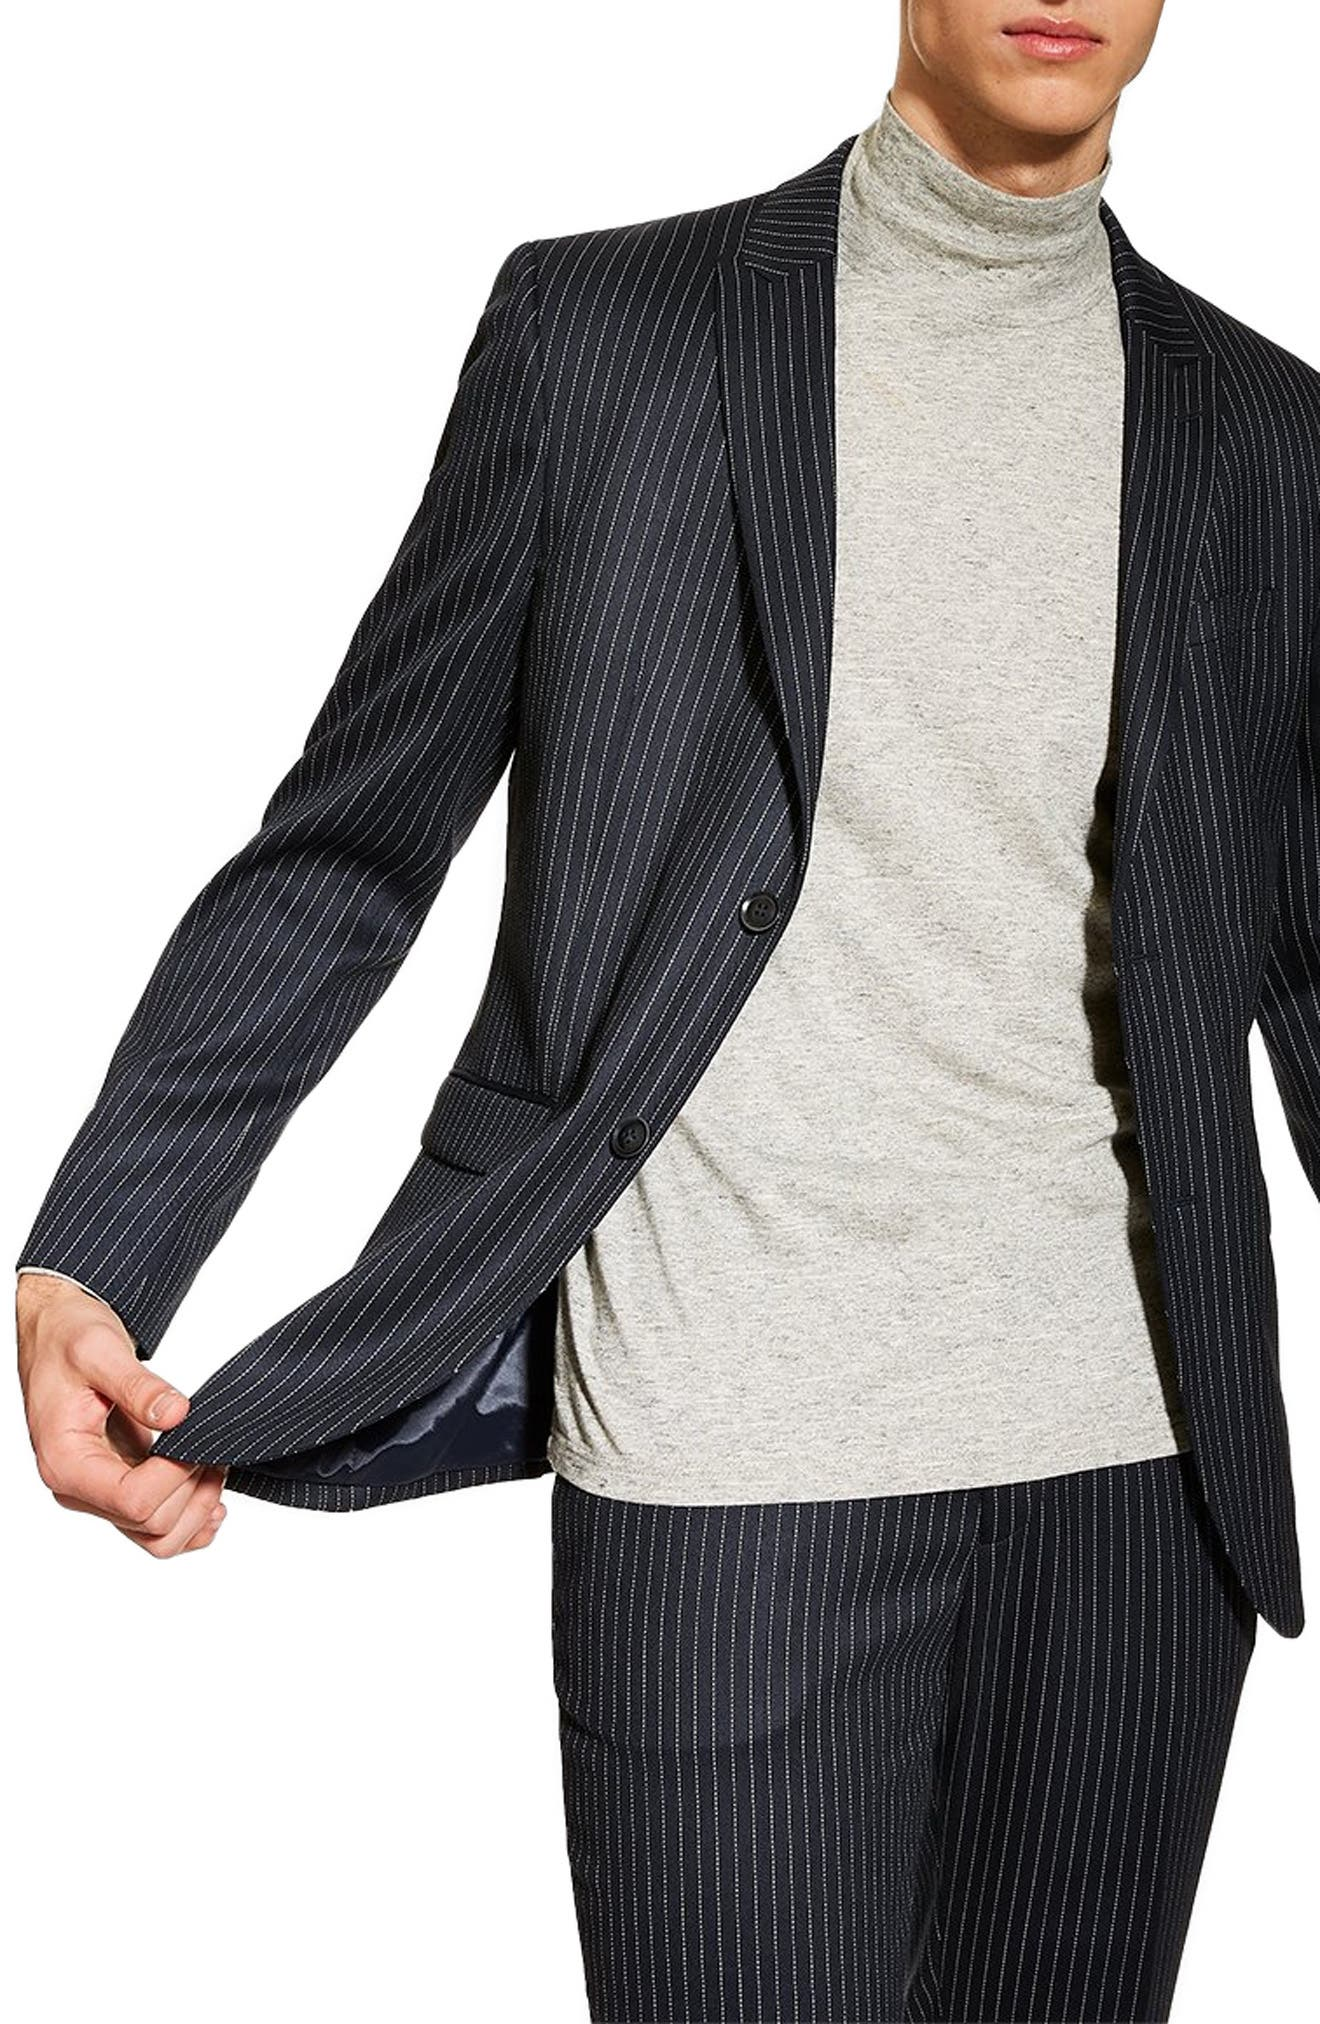 TOPMAN, Tailored Pinstripe Suit Jacket, Main thumbnail 1, color, NAVY BLUE